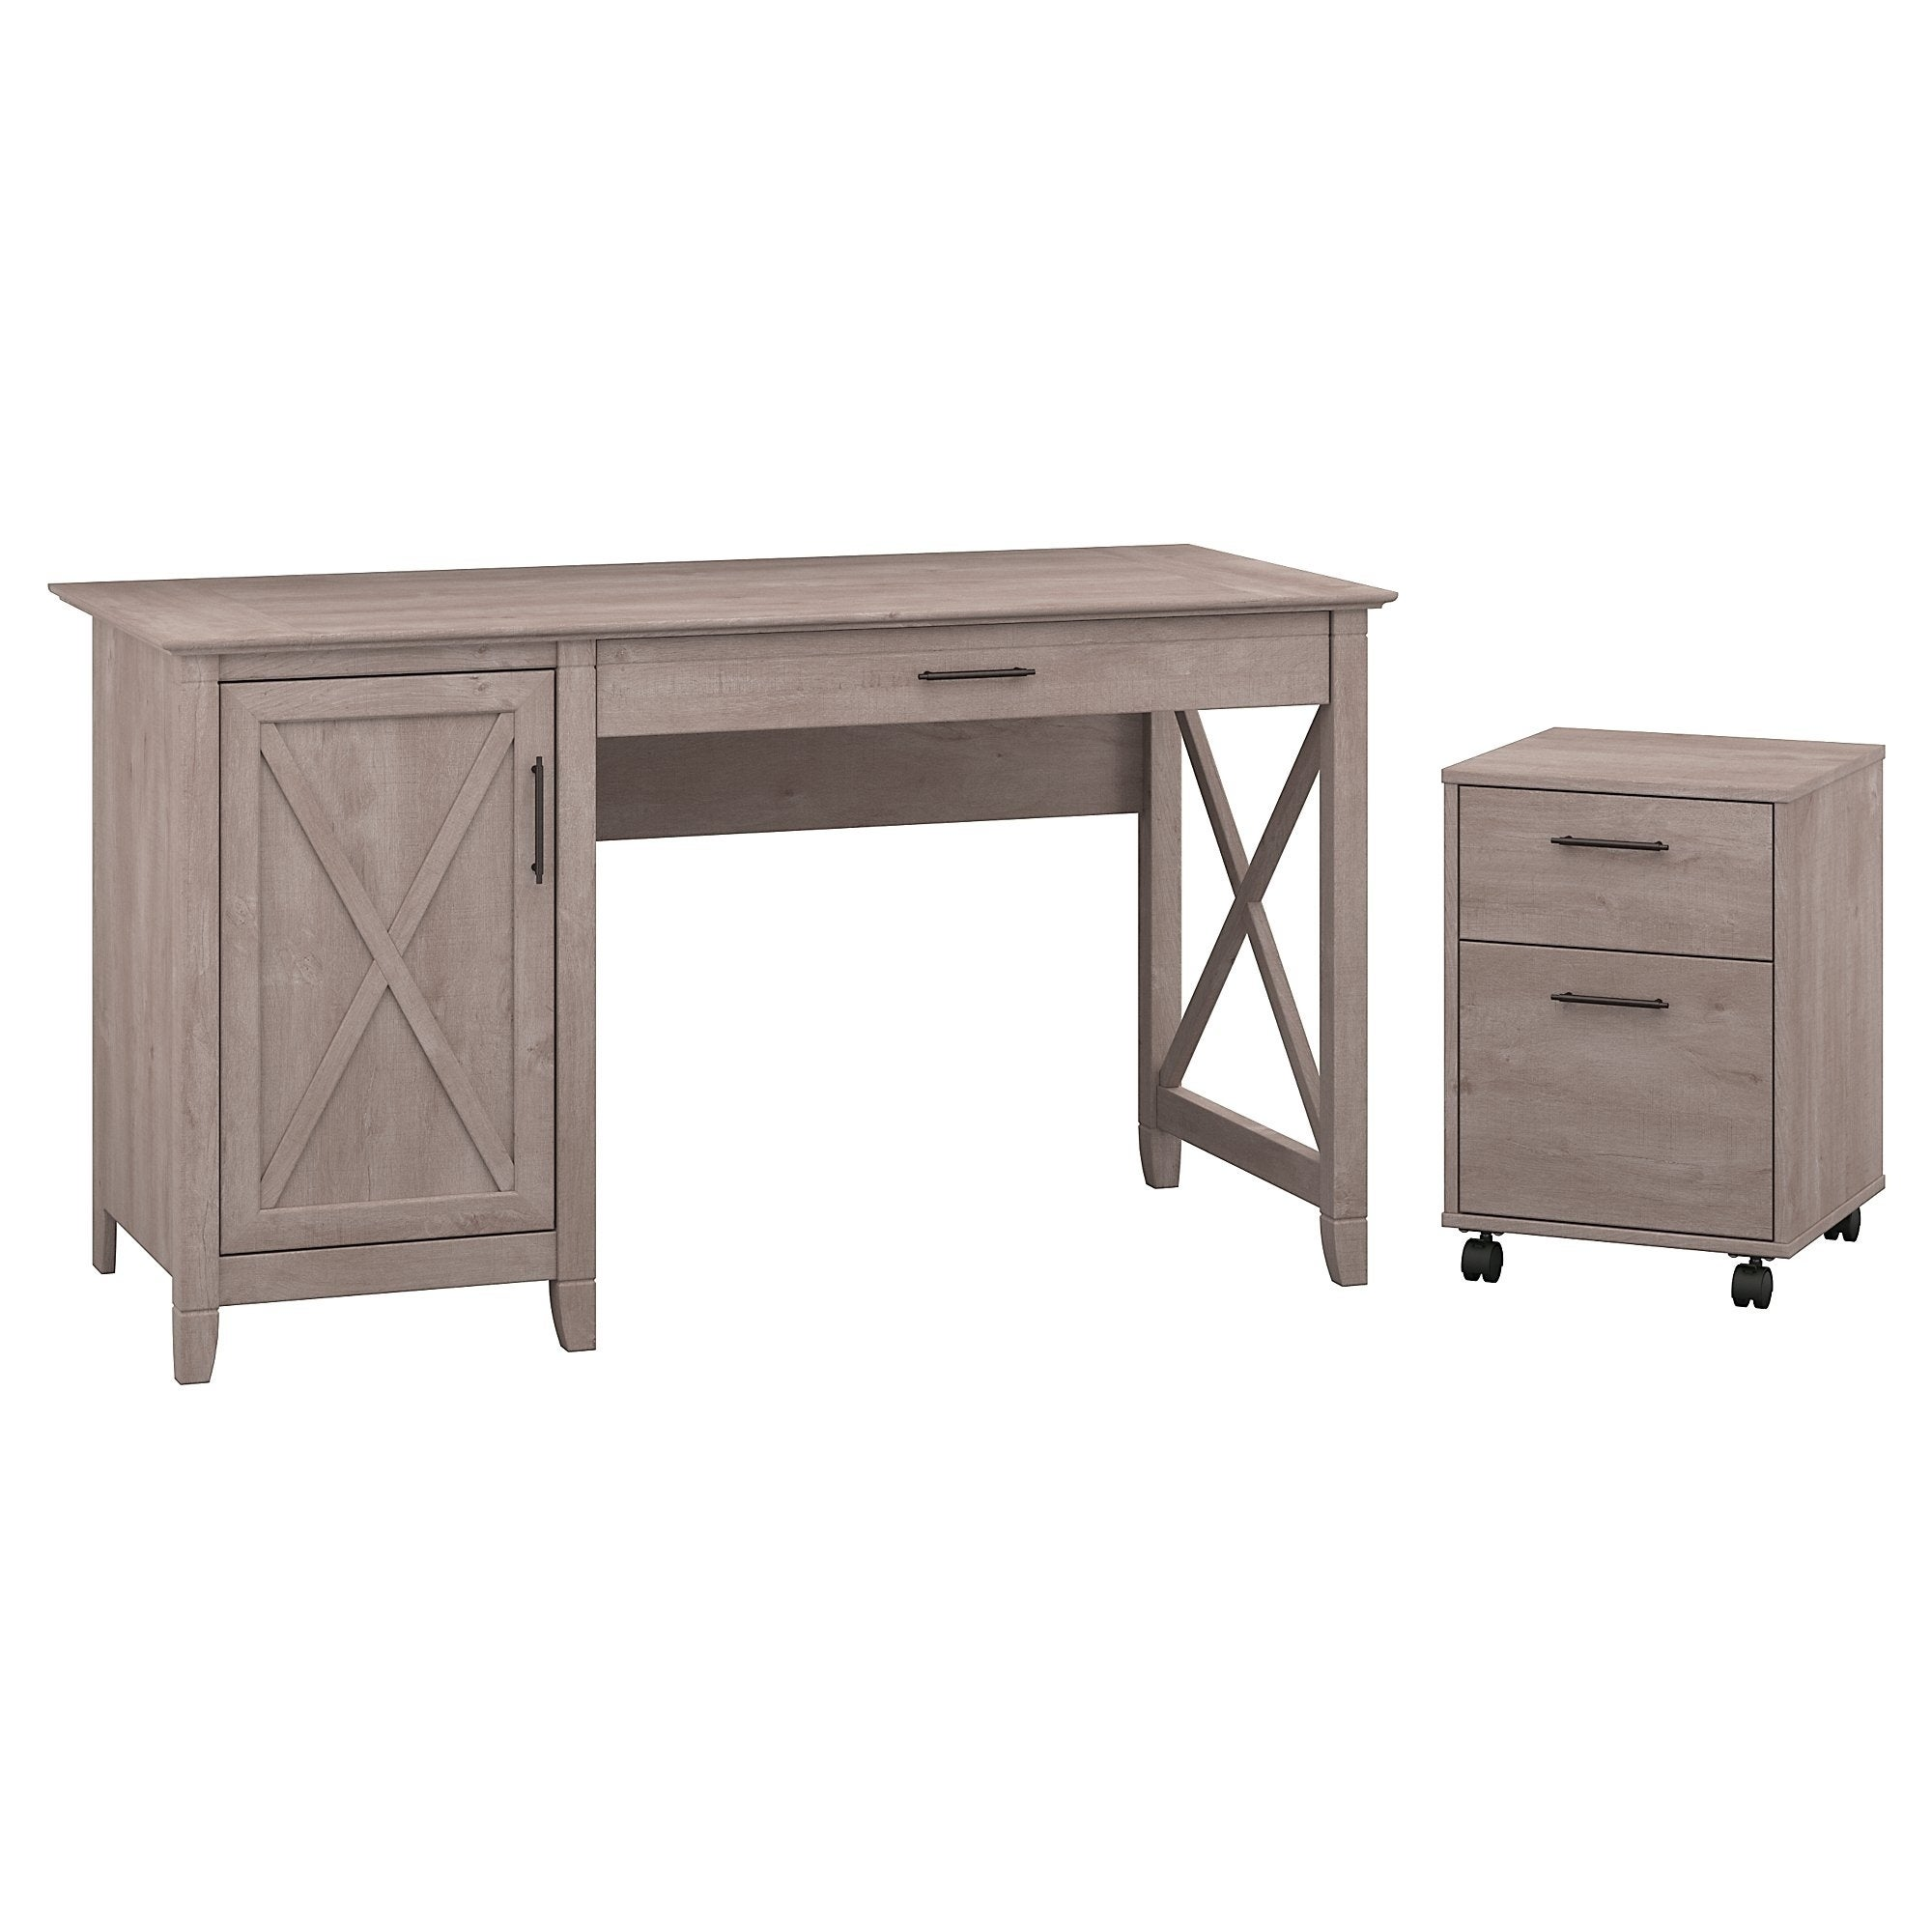 pedestal open copy ideal small hill shelf lavender desk robe of drawer products furnishings single ped elfin